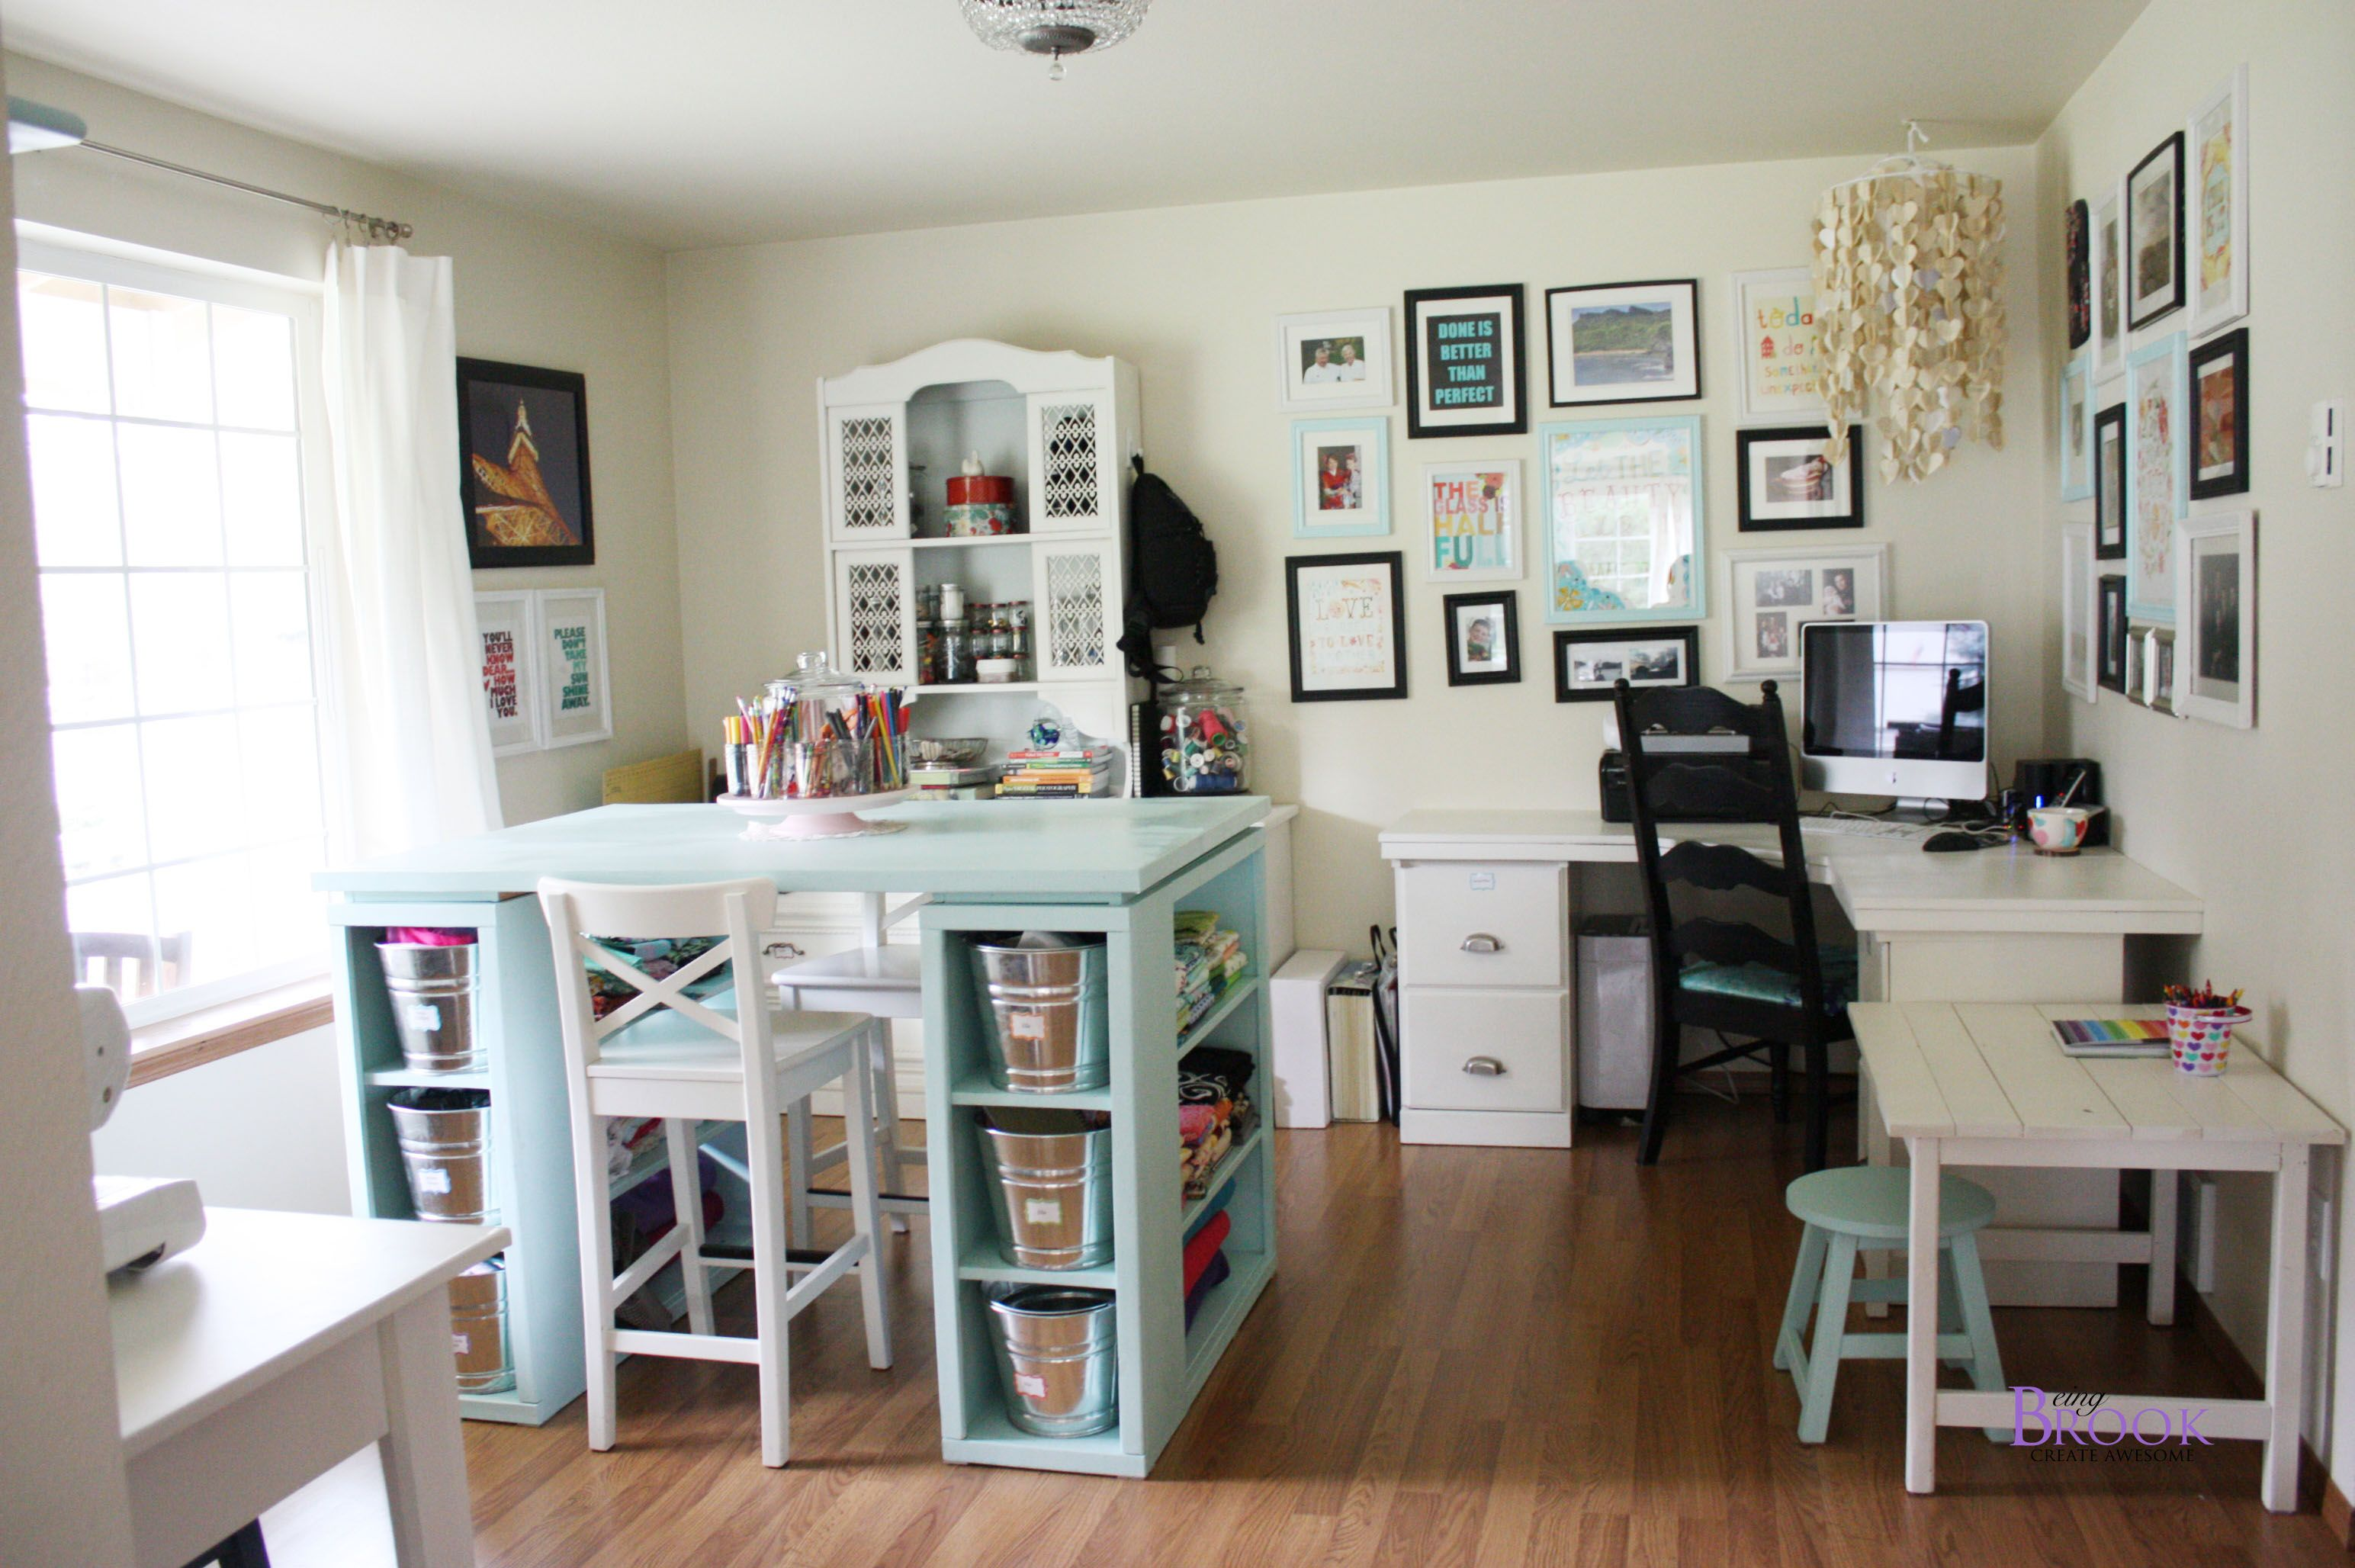 Great Ideas 21 Inspiring Diy Projects Tatertots And Jello Sewing Room Design Dream Craft Room Craft Room Design